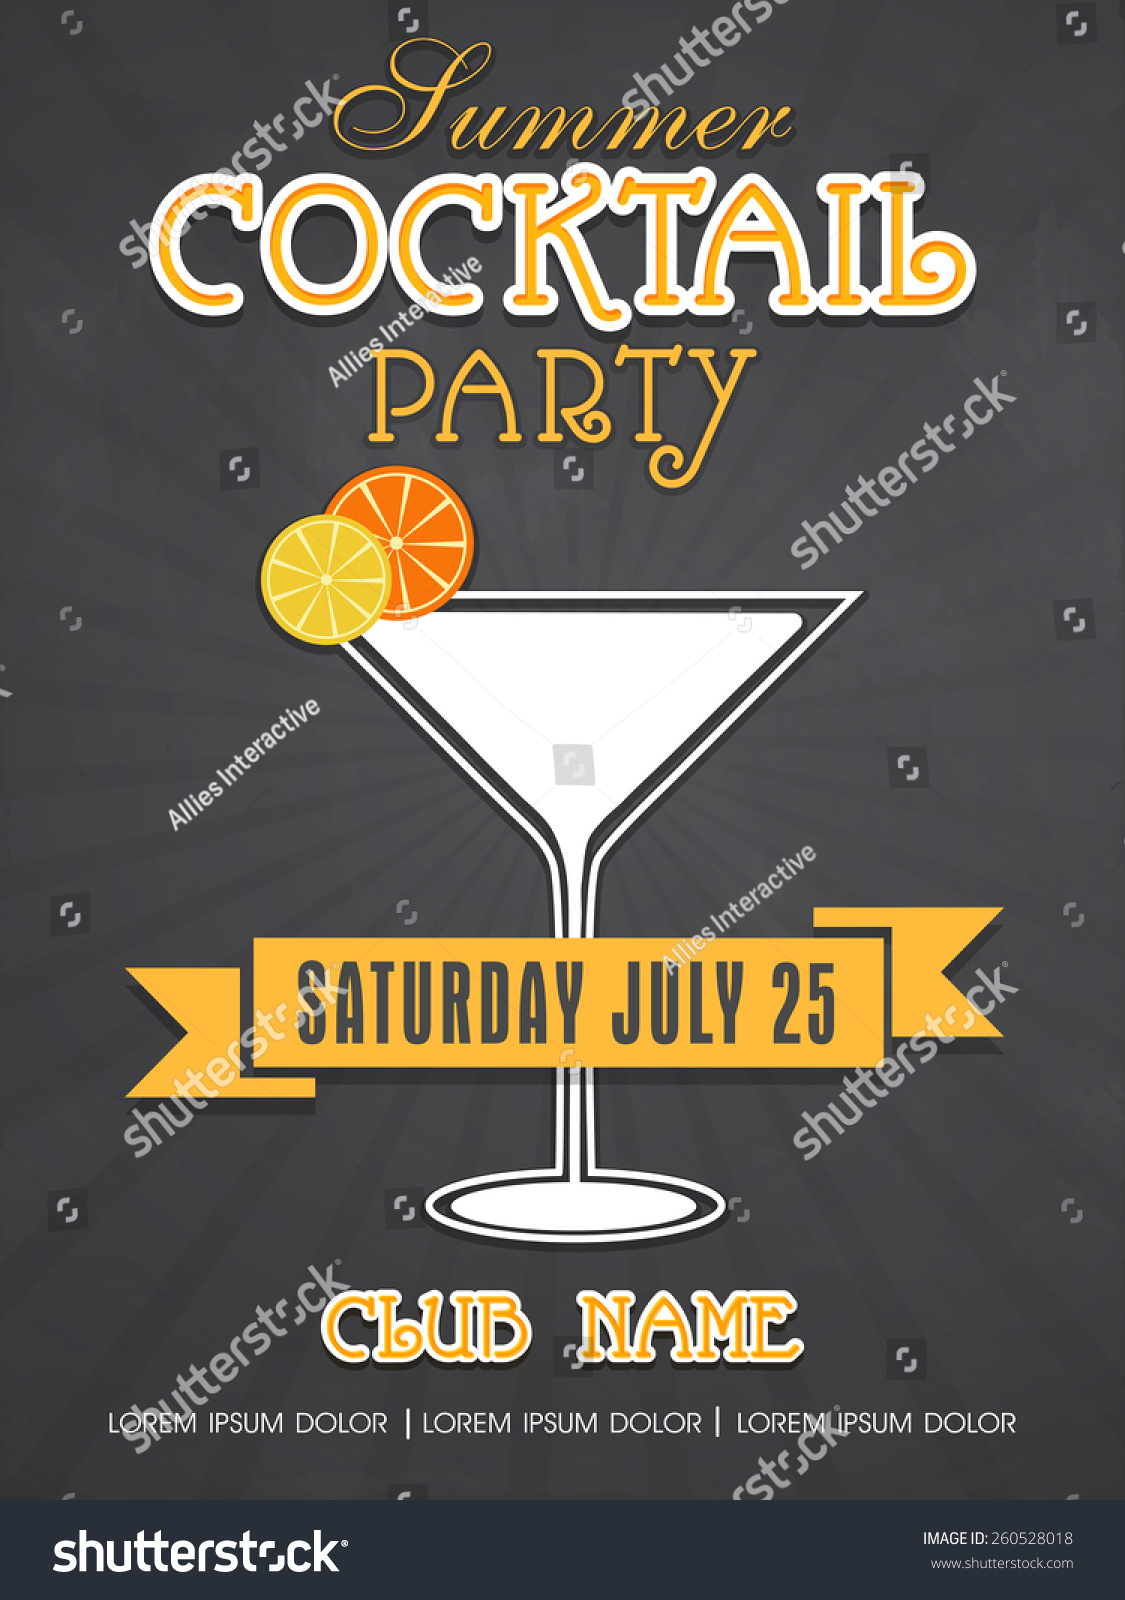 Stylish Summer Cocktail Party Invitation Card Design With ...